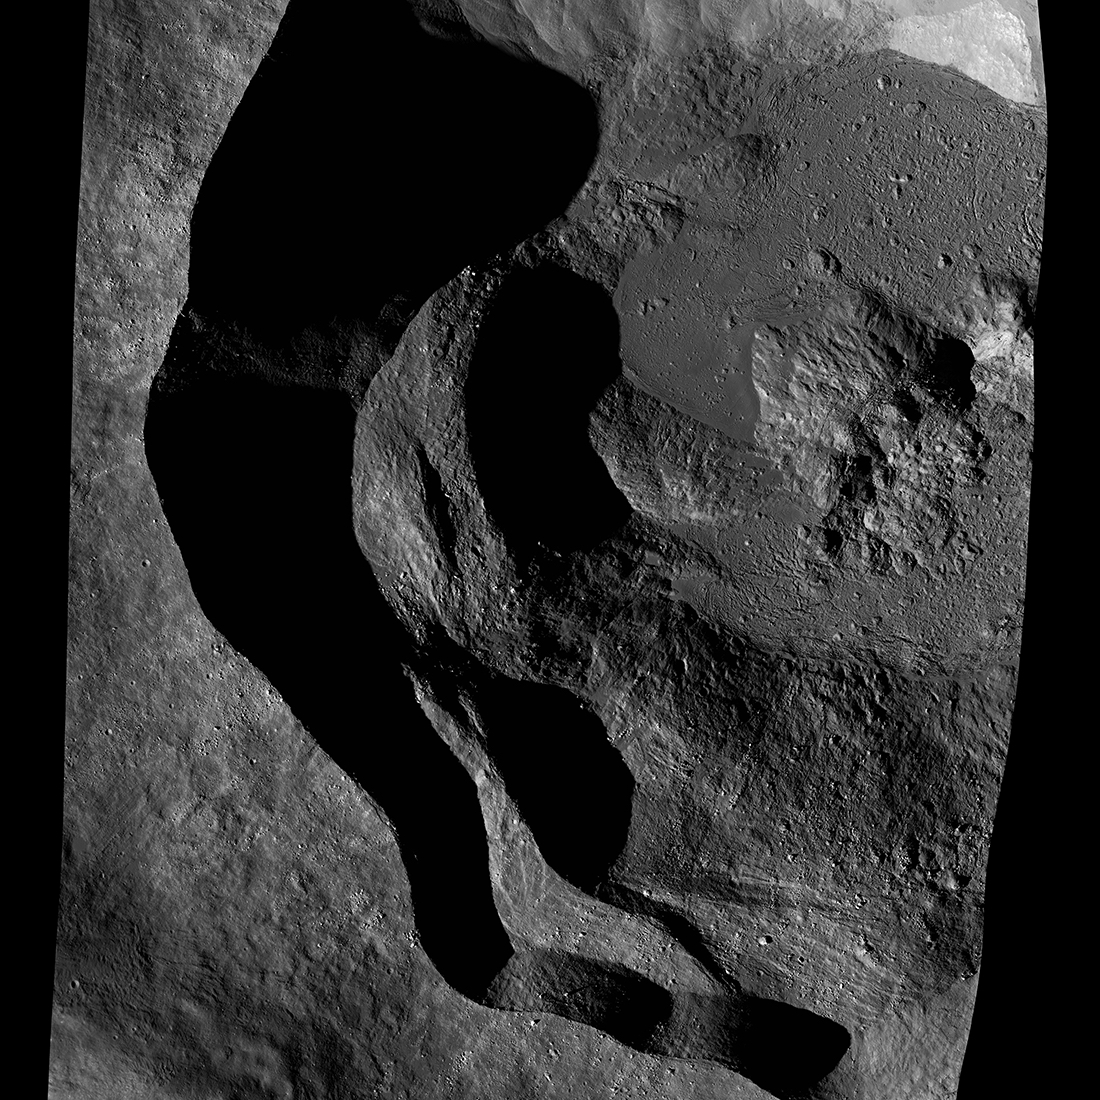 crater with deep shadows